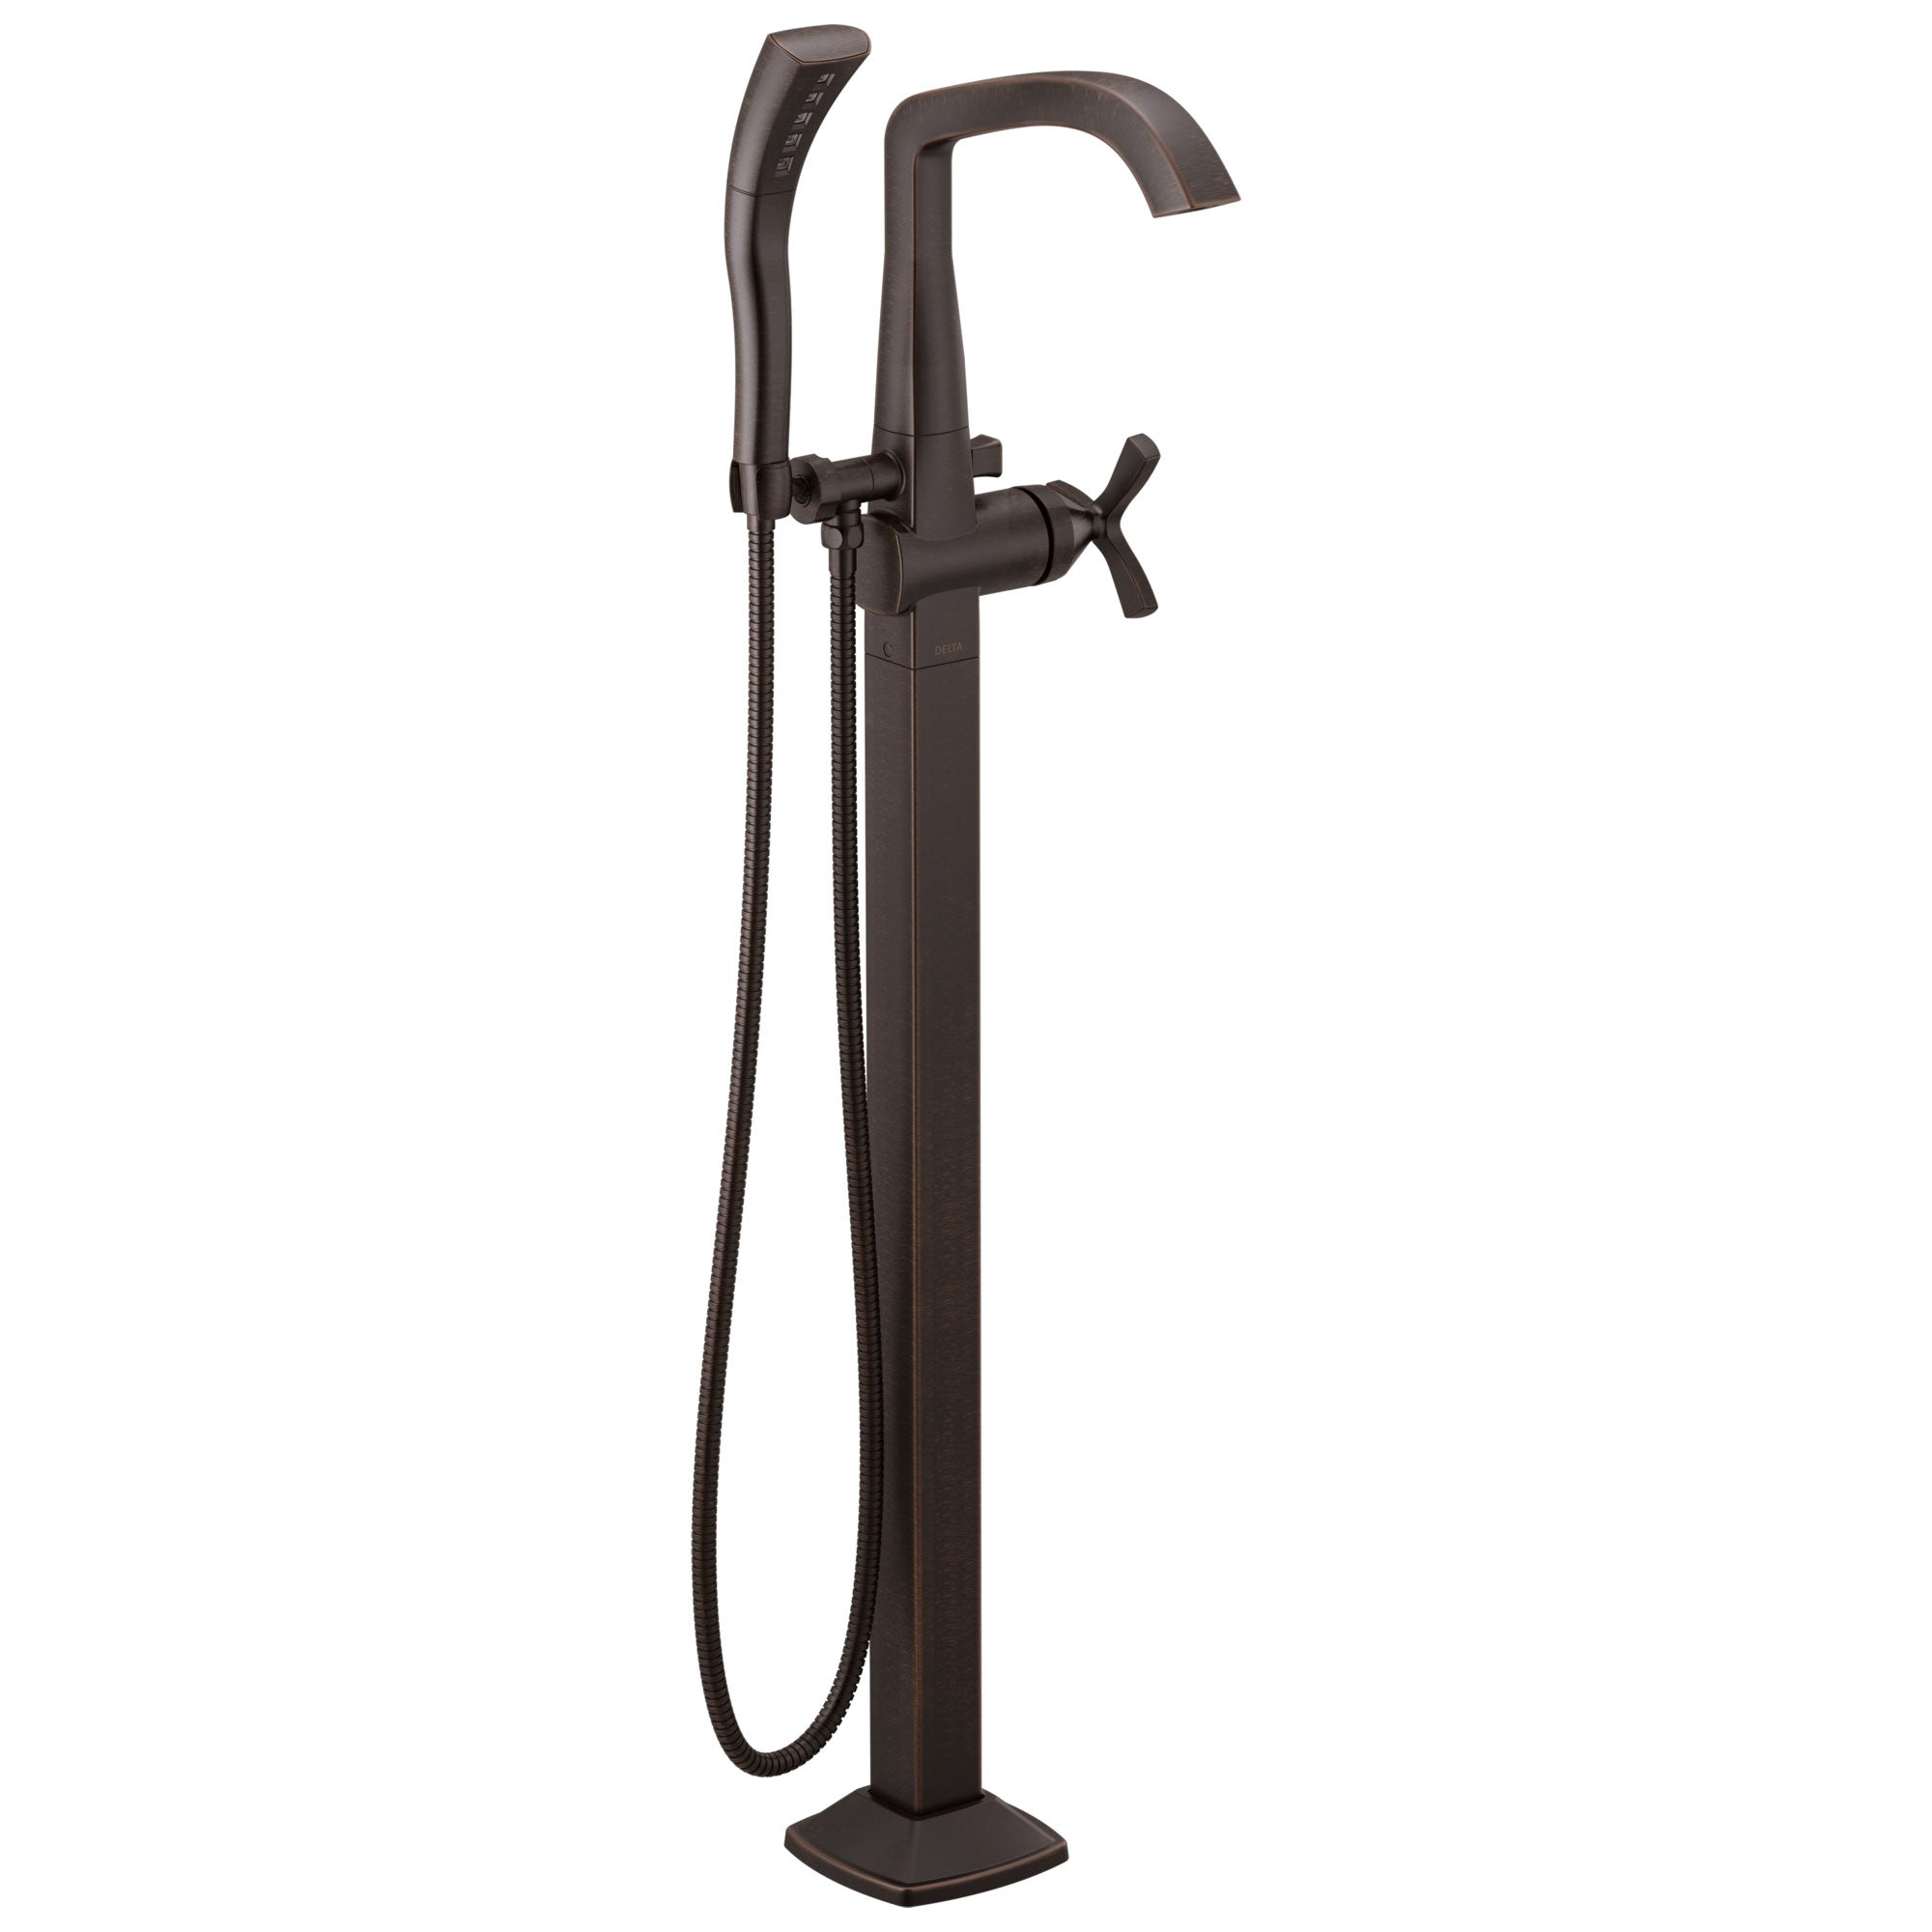 Delta Stryke Venetian Bronze Finish Single Helo Cross Handle Floor Mount Tub Filler Faucet with Hand Sprayer Includes Rough-in Valve D3043V